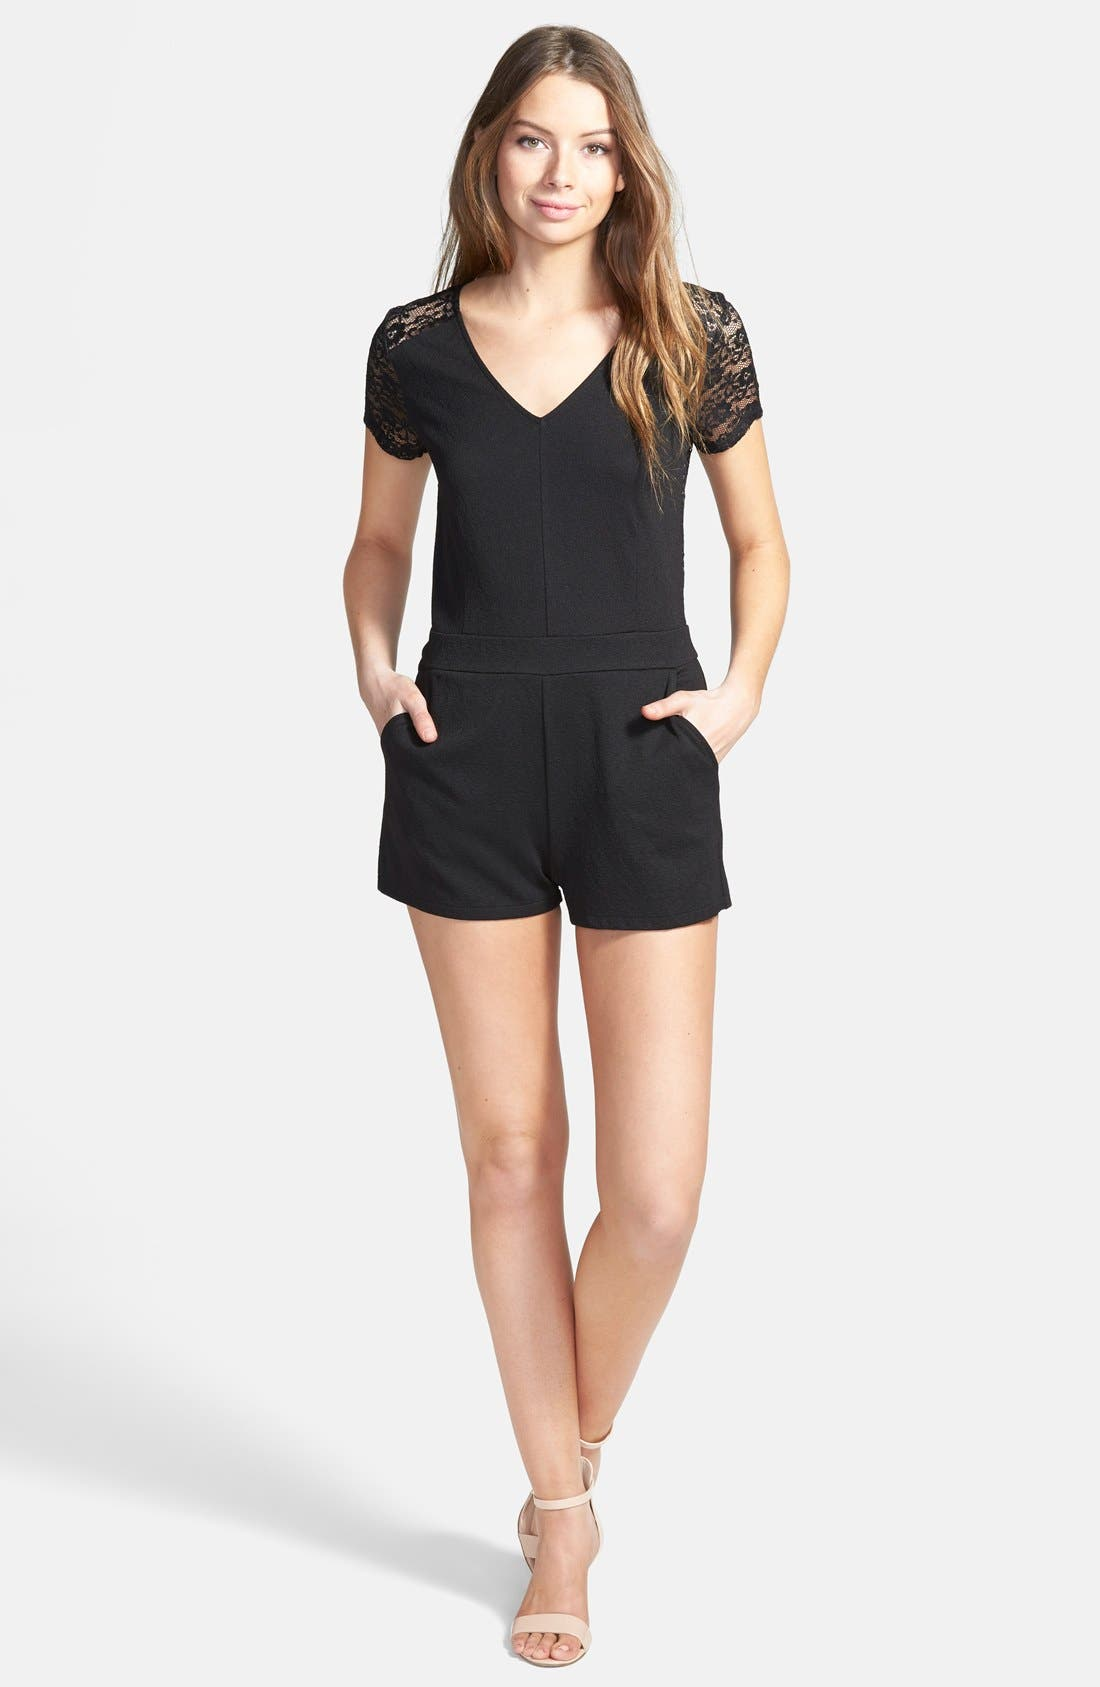 Shop for Juniors Dresses & Rompers in Juniors Dresses & Rompers. Buy products such as Juniors' Scoop Dress with Criss-Cross Back at Walmart and save.